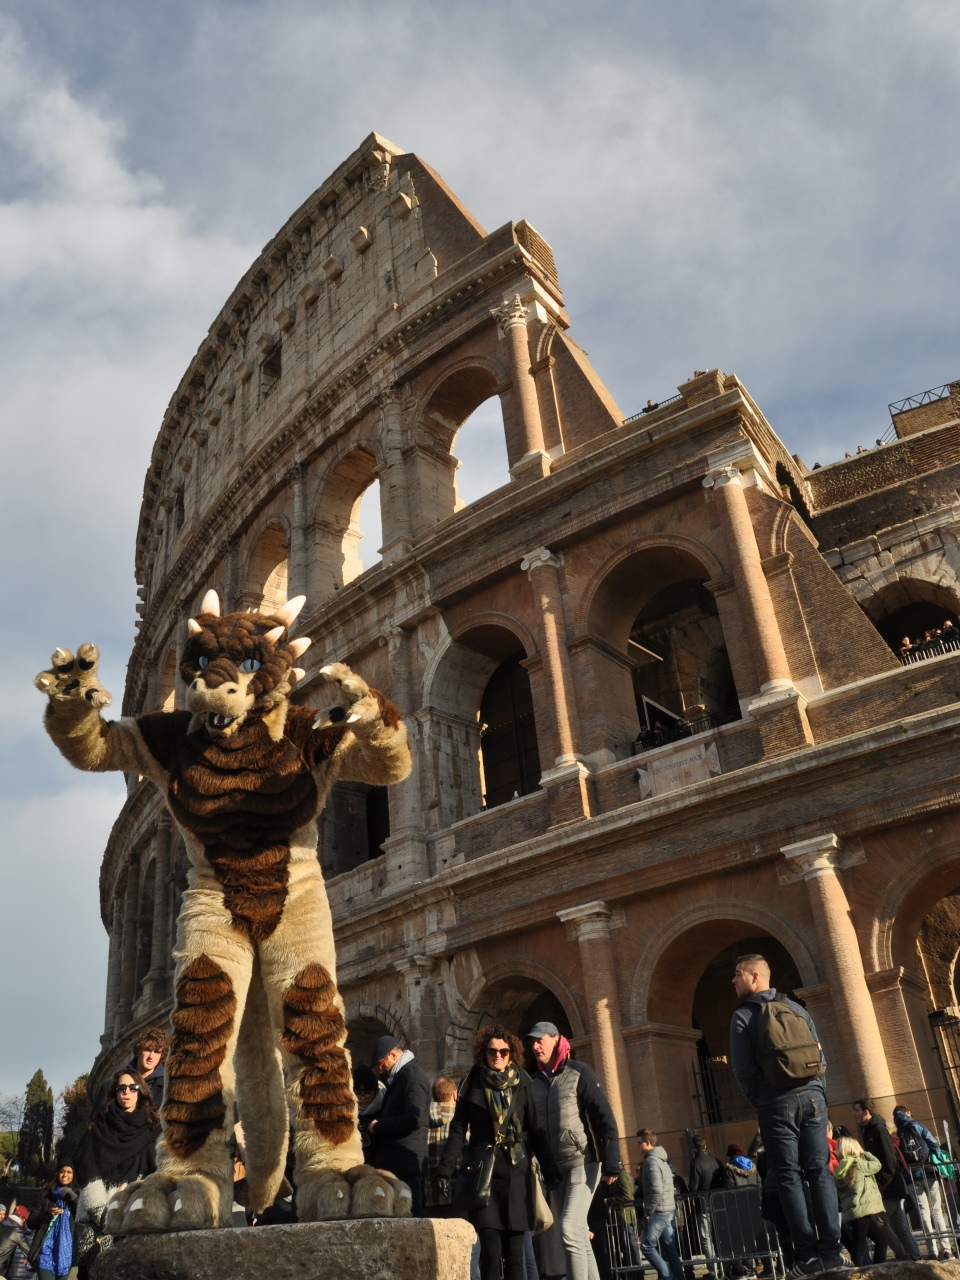 Roaring at the Colosseum!